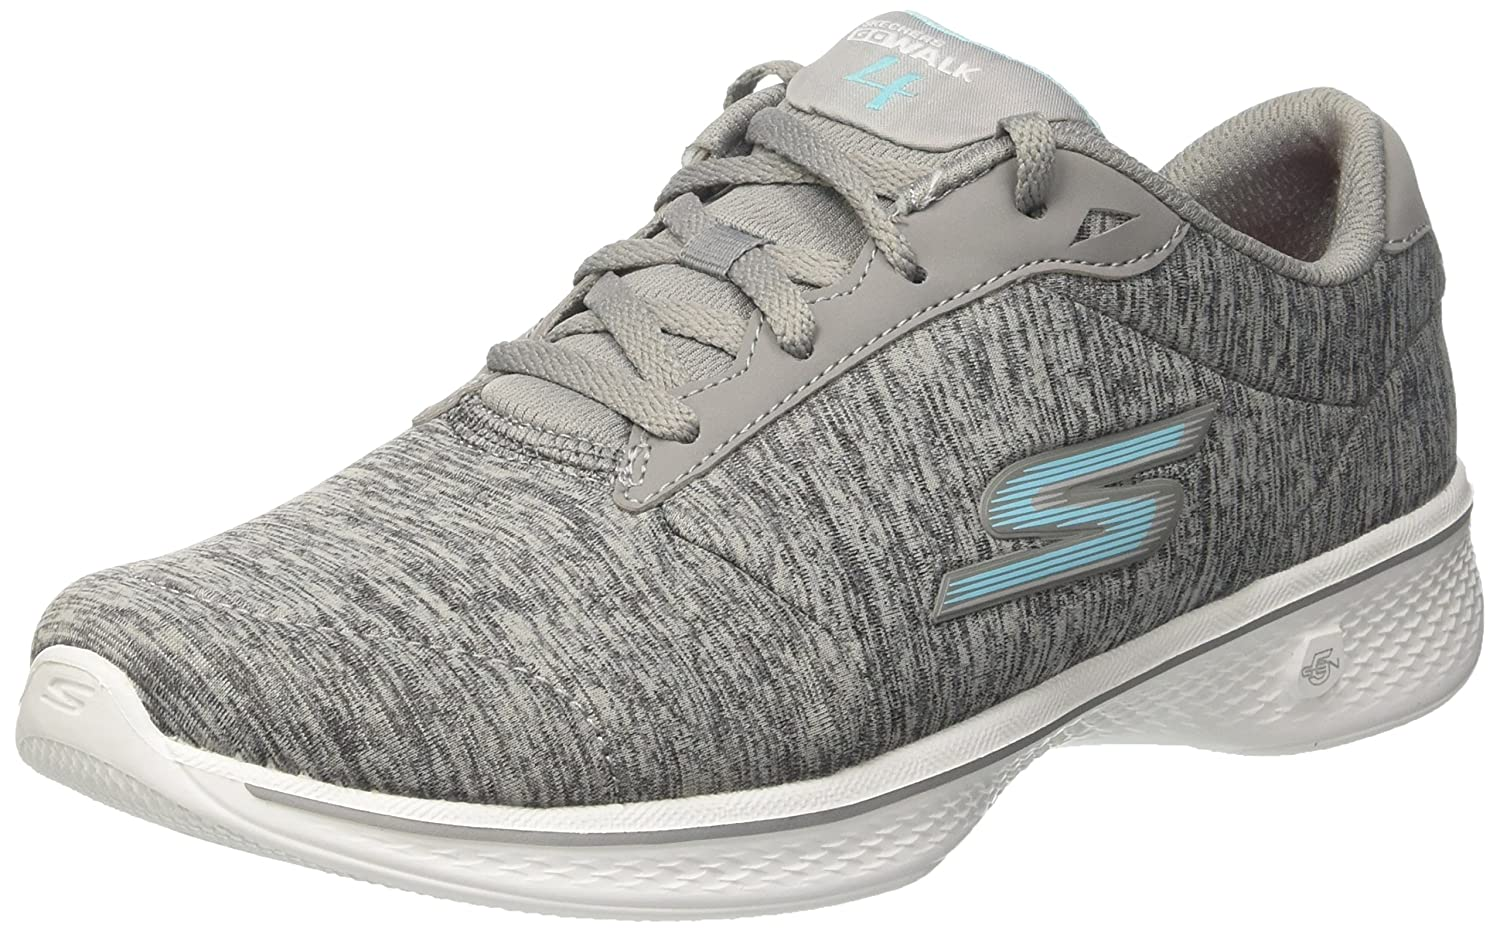 Skechers Performance Women's Go Walk 4 Lace-up Walking Shoe B01LE1J0HC 8 C/D US|Gray Blue